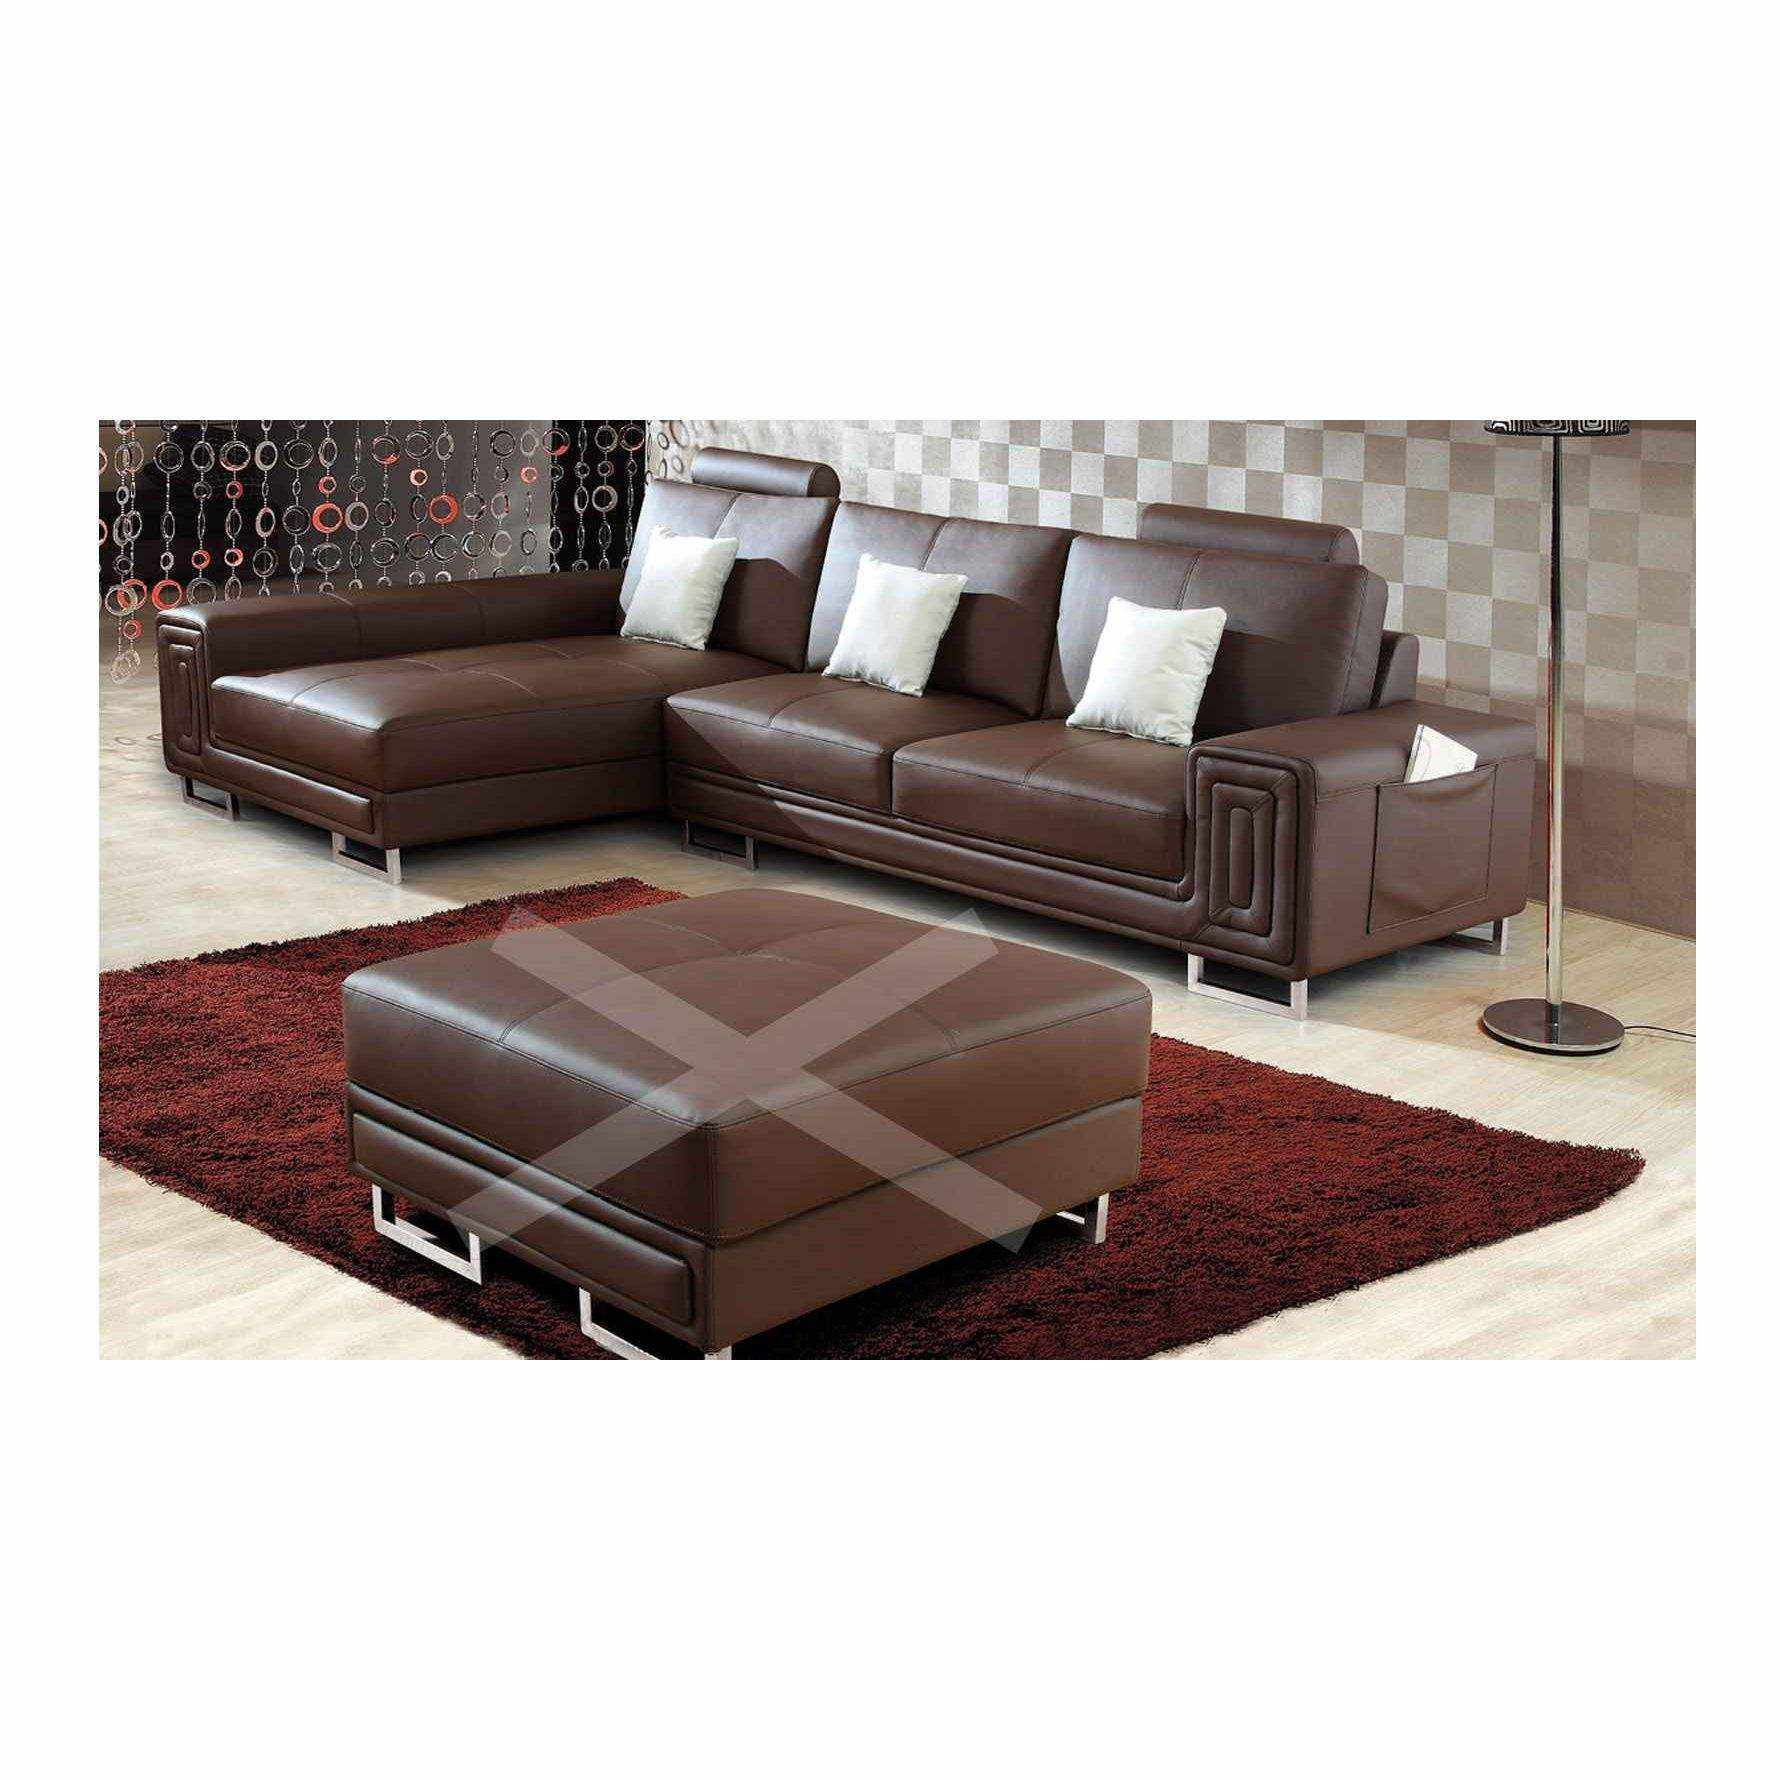 Deco in paris canape cuir d angle marron tetieres relax for Canape cuir kreabel